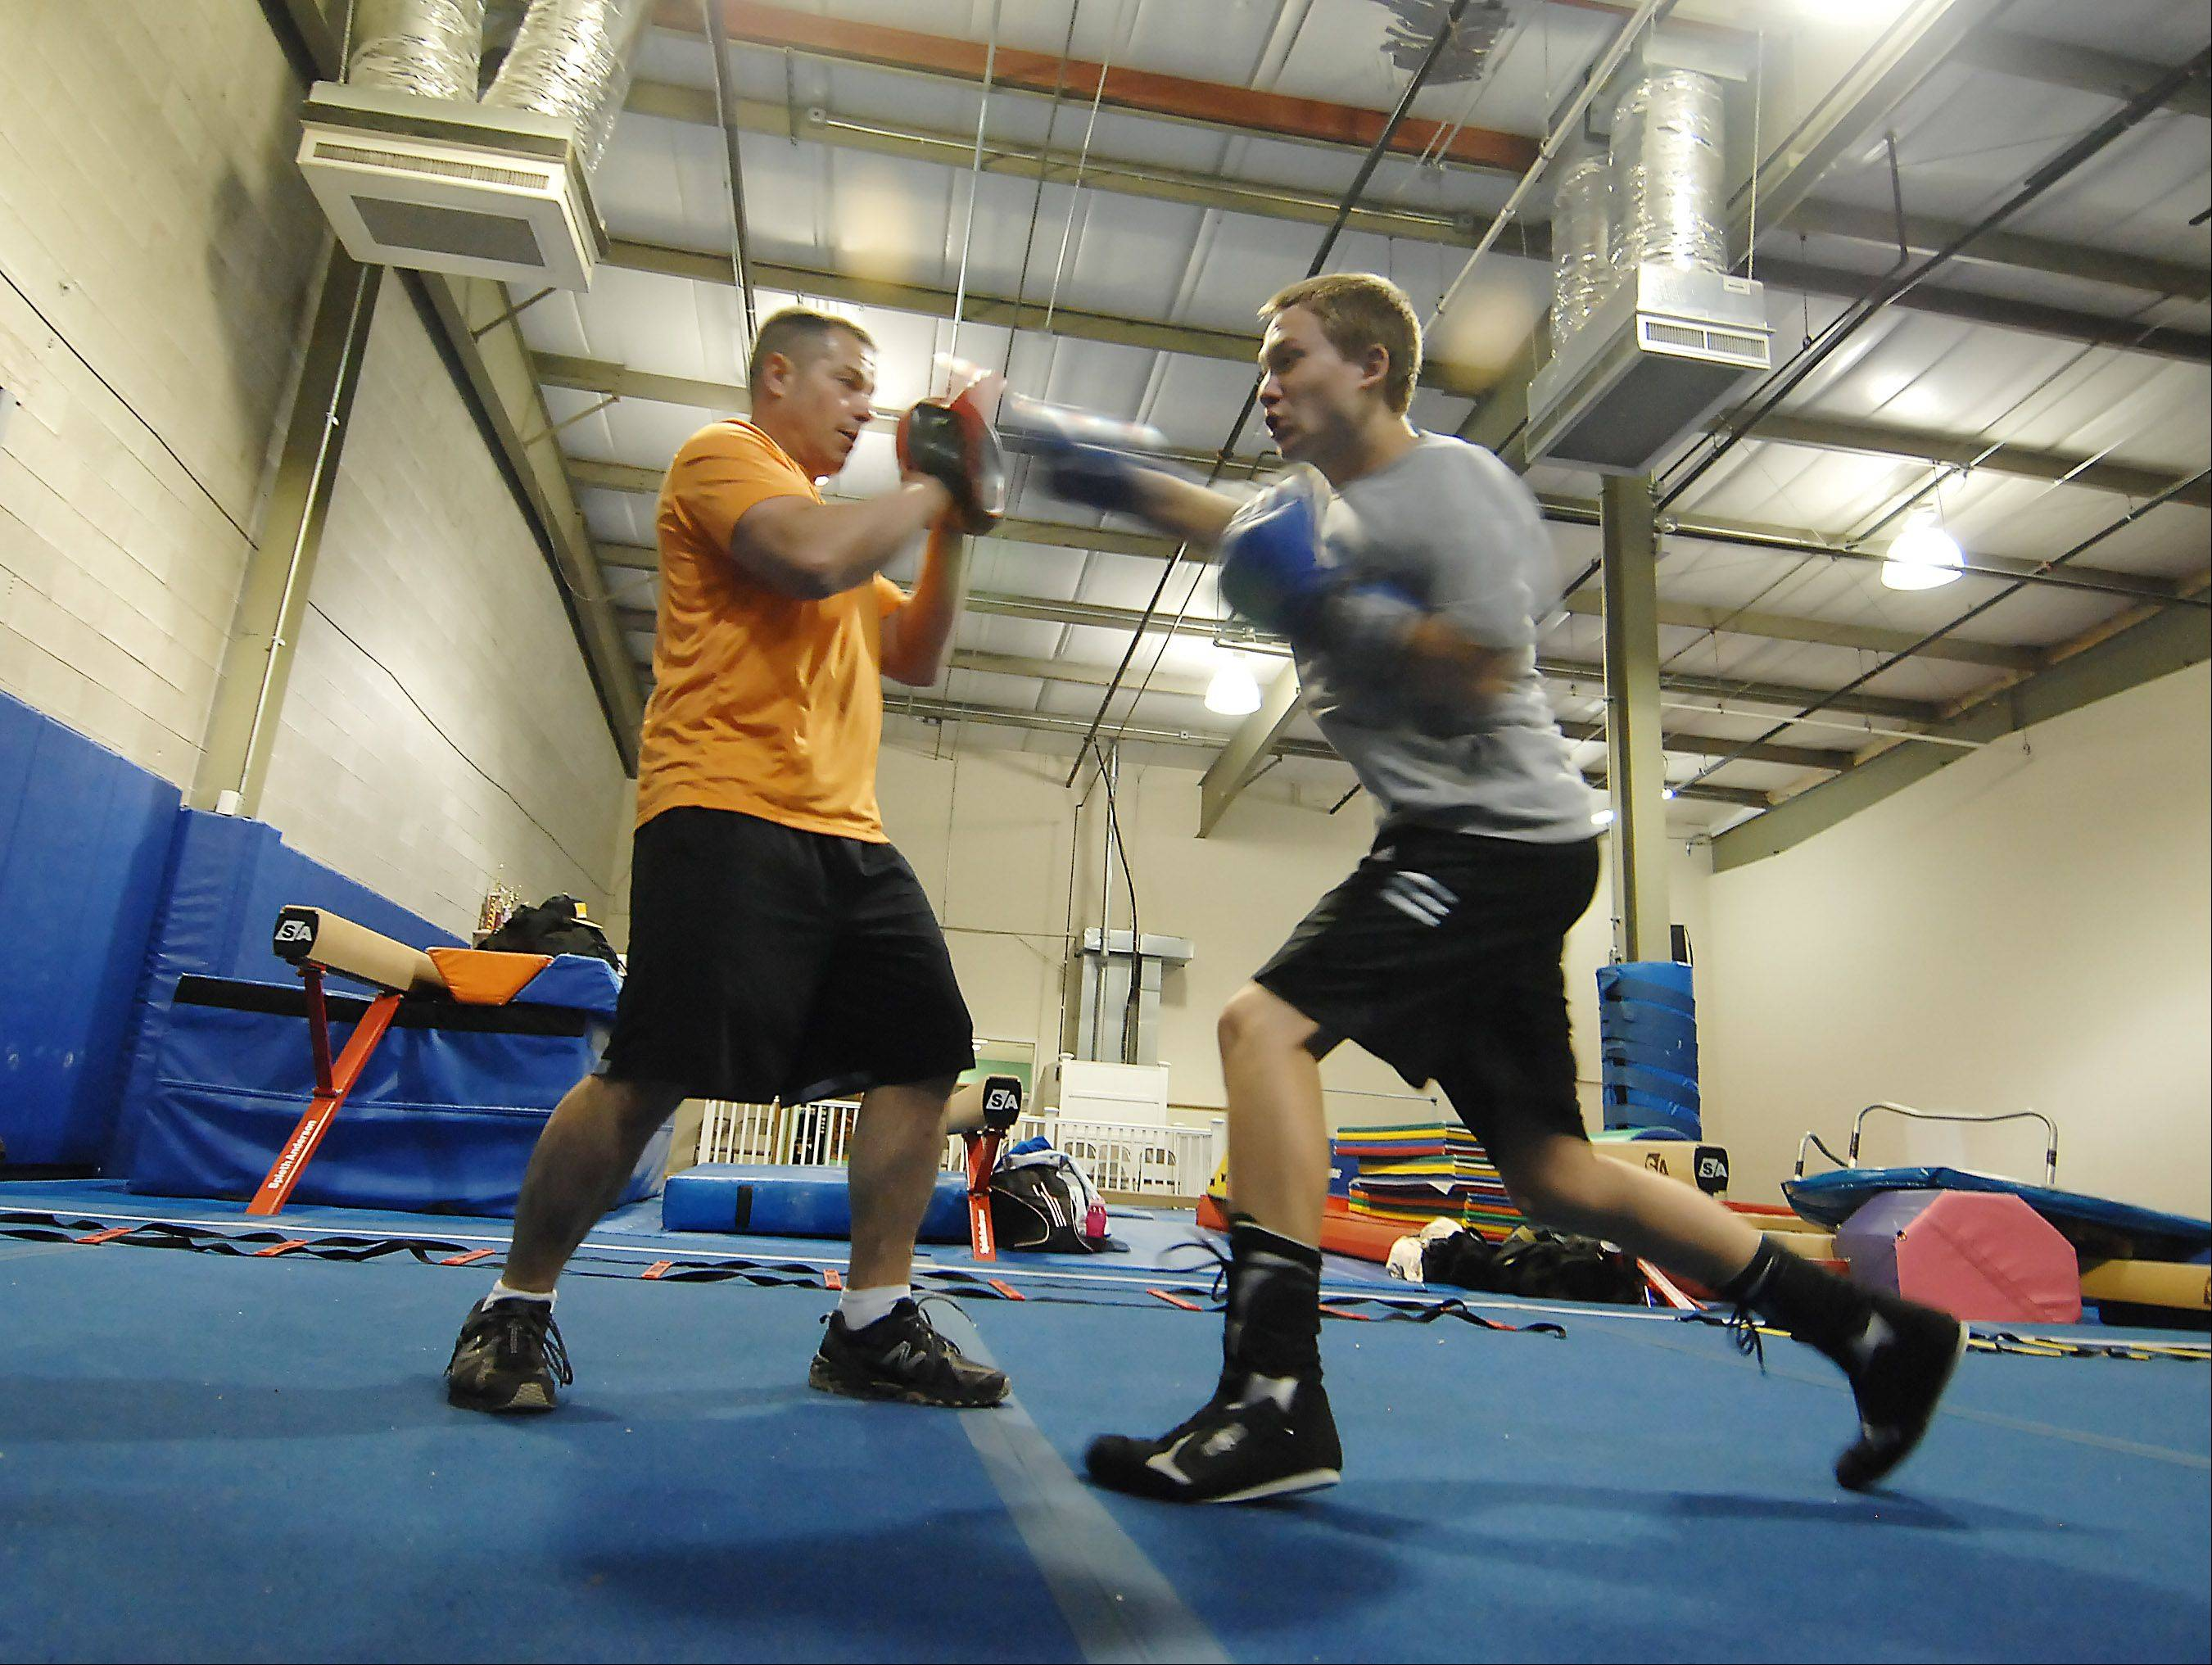 Paul Jonas is launching Poundit Boxing Promotions by having a boxing exhibition this weekend. He coaches several people in the sport each night in Cary, including Jimmy Gustafson, 16, of Lake in the Hills.